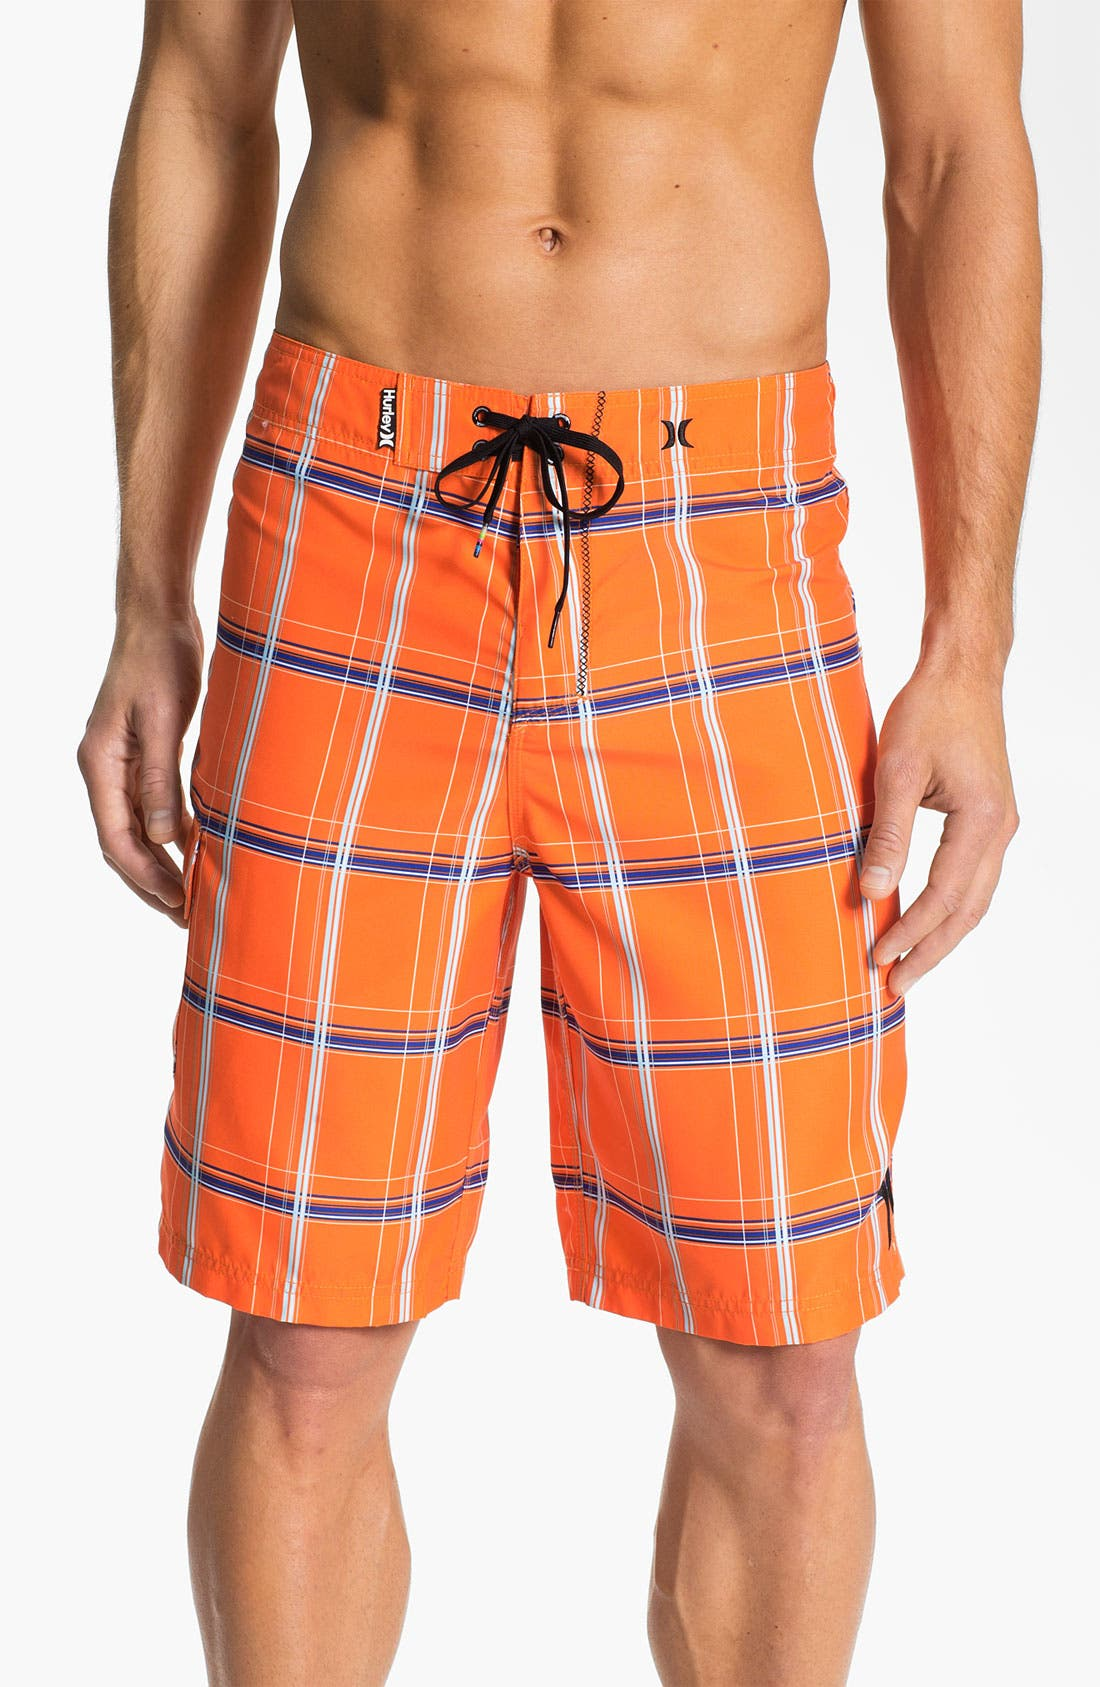 Alternate Image 1 Selected - Hurley 'Puerto Rico' Recycled Board Shorts